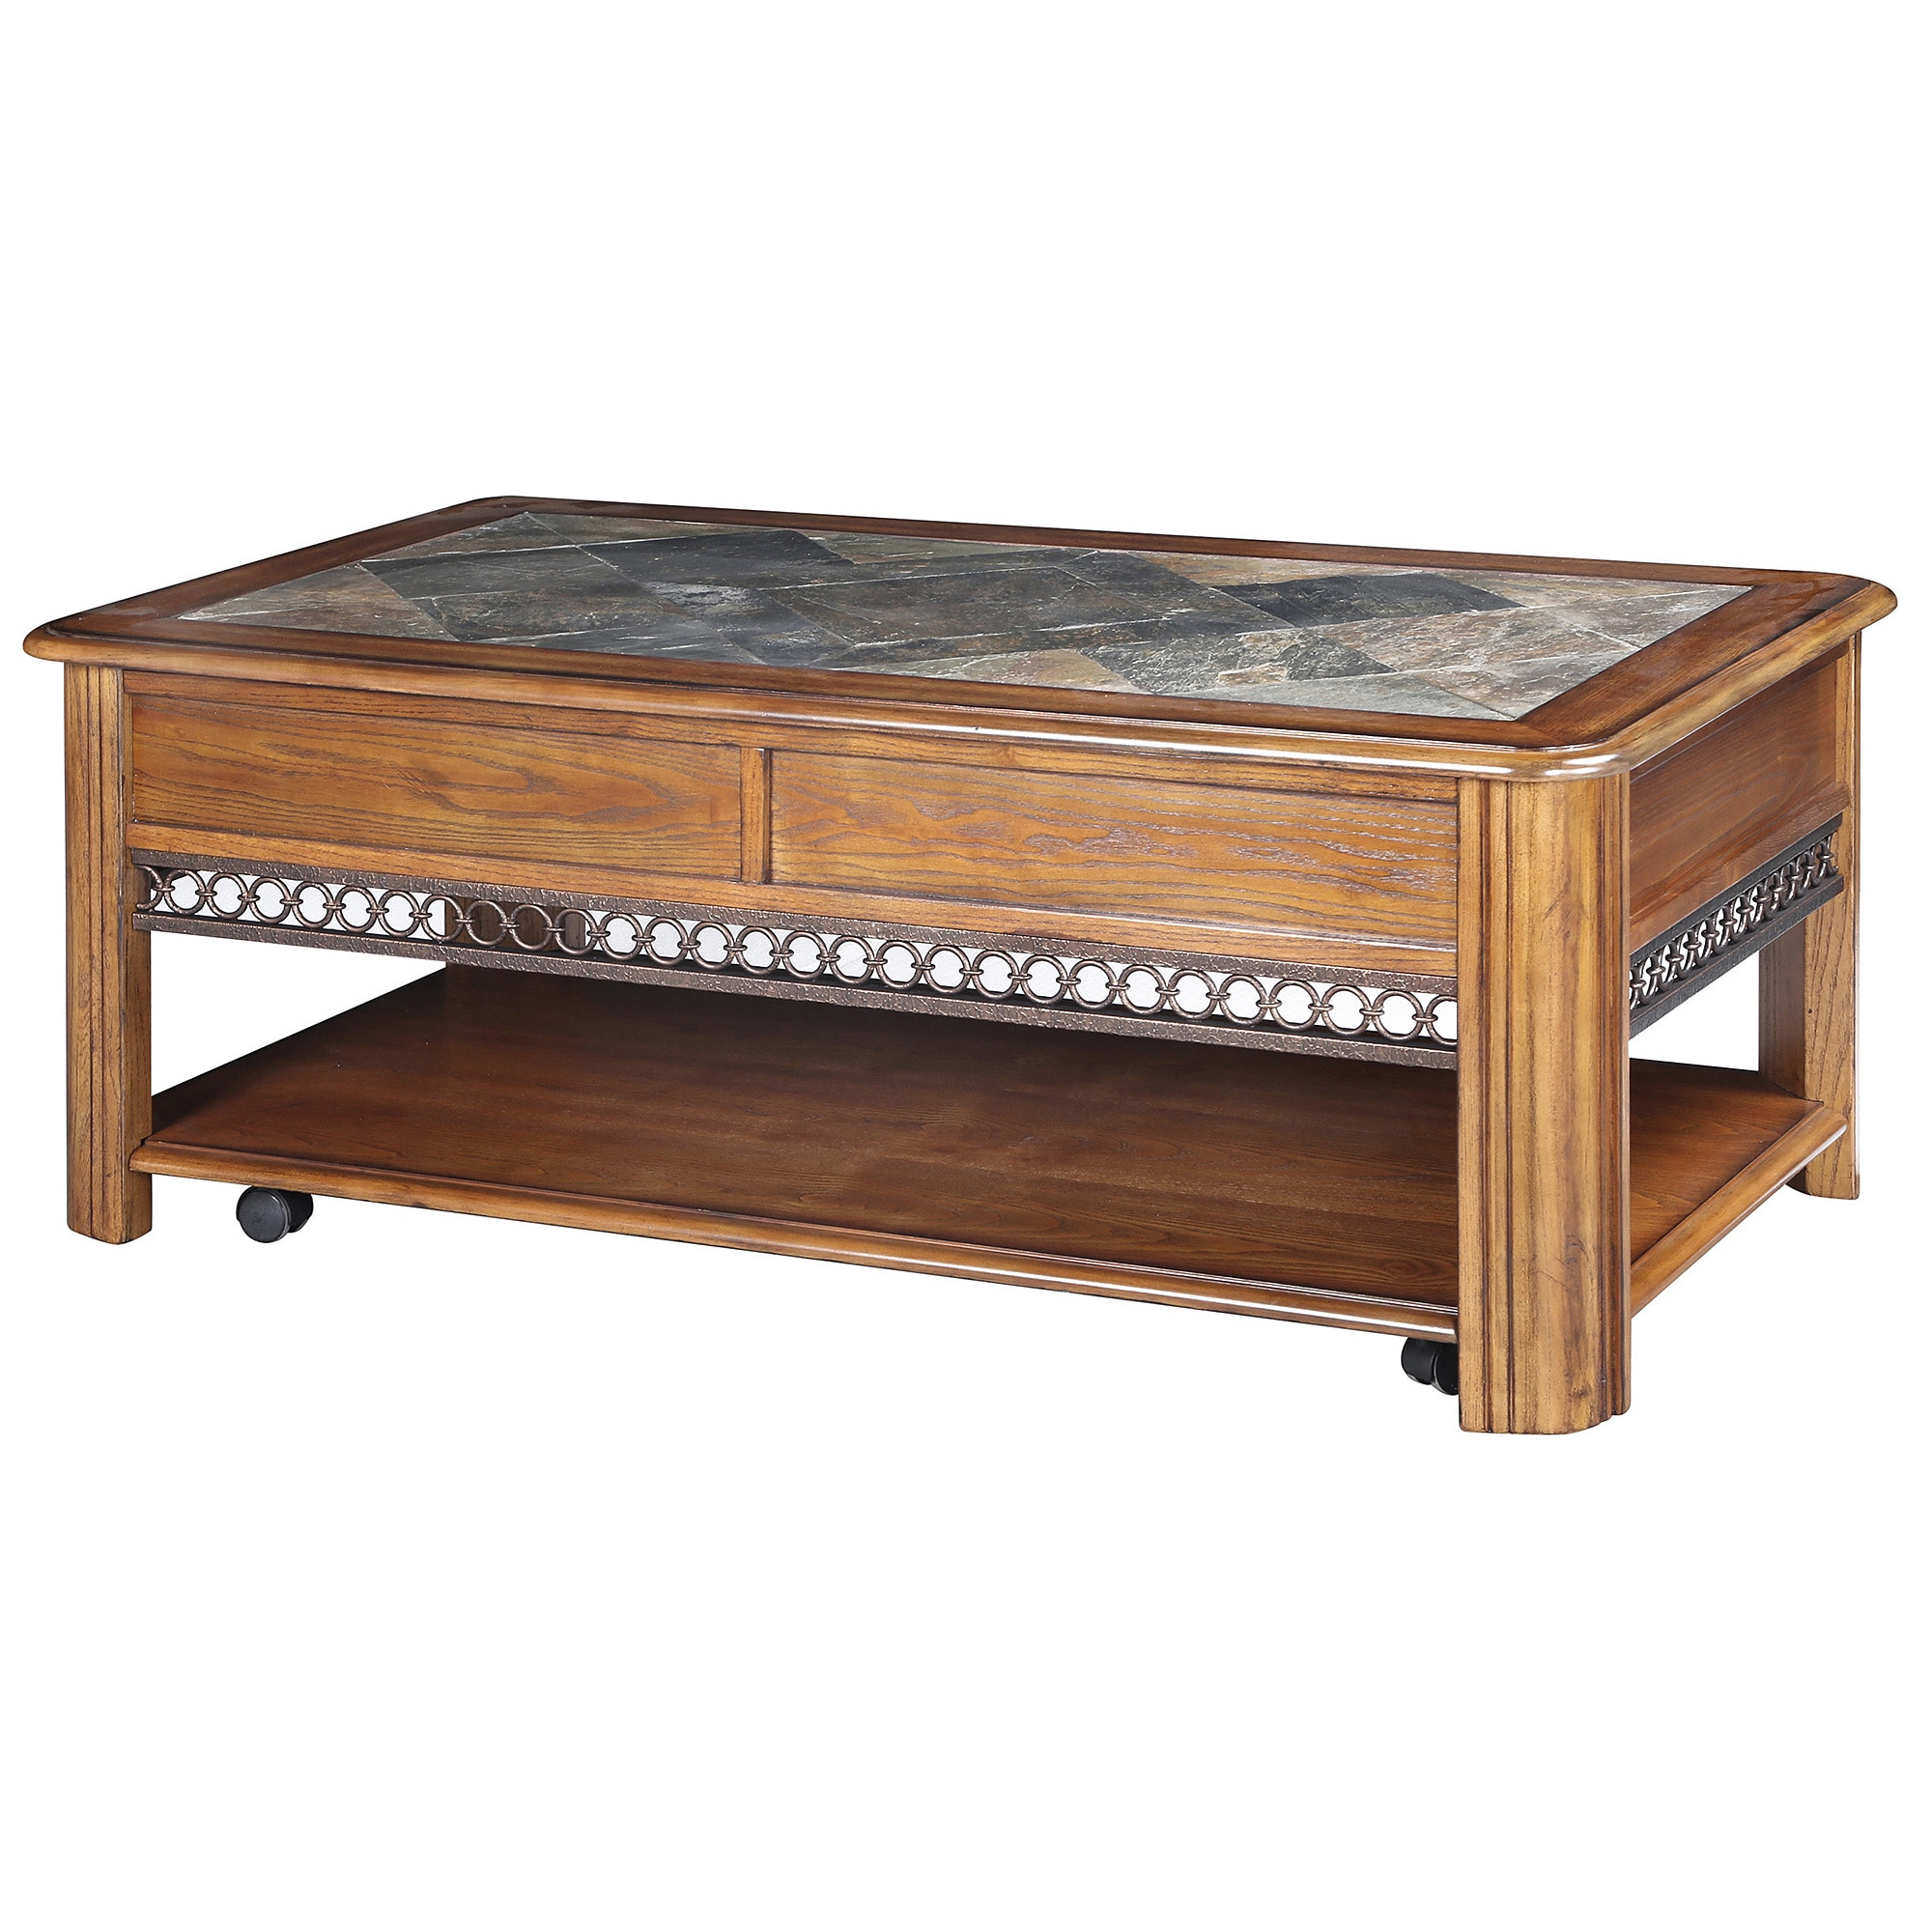 Shop Madison Rustic Warm Nutmeg Lift Top Coffee Table With Casters